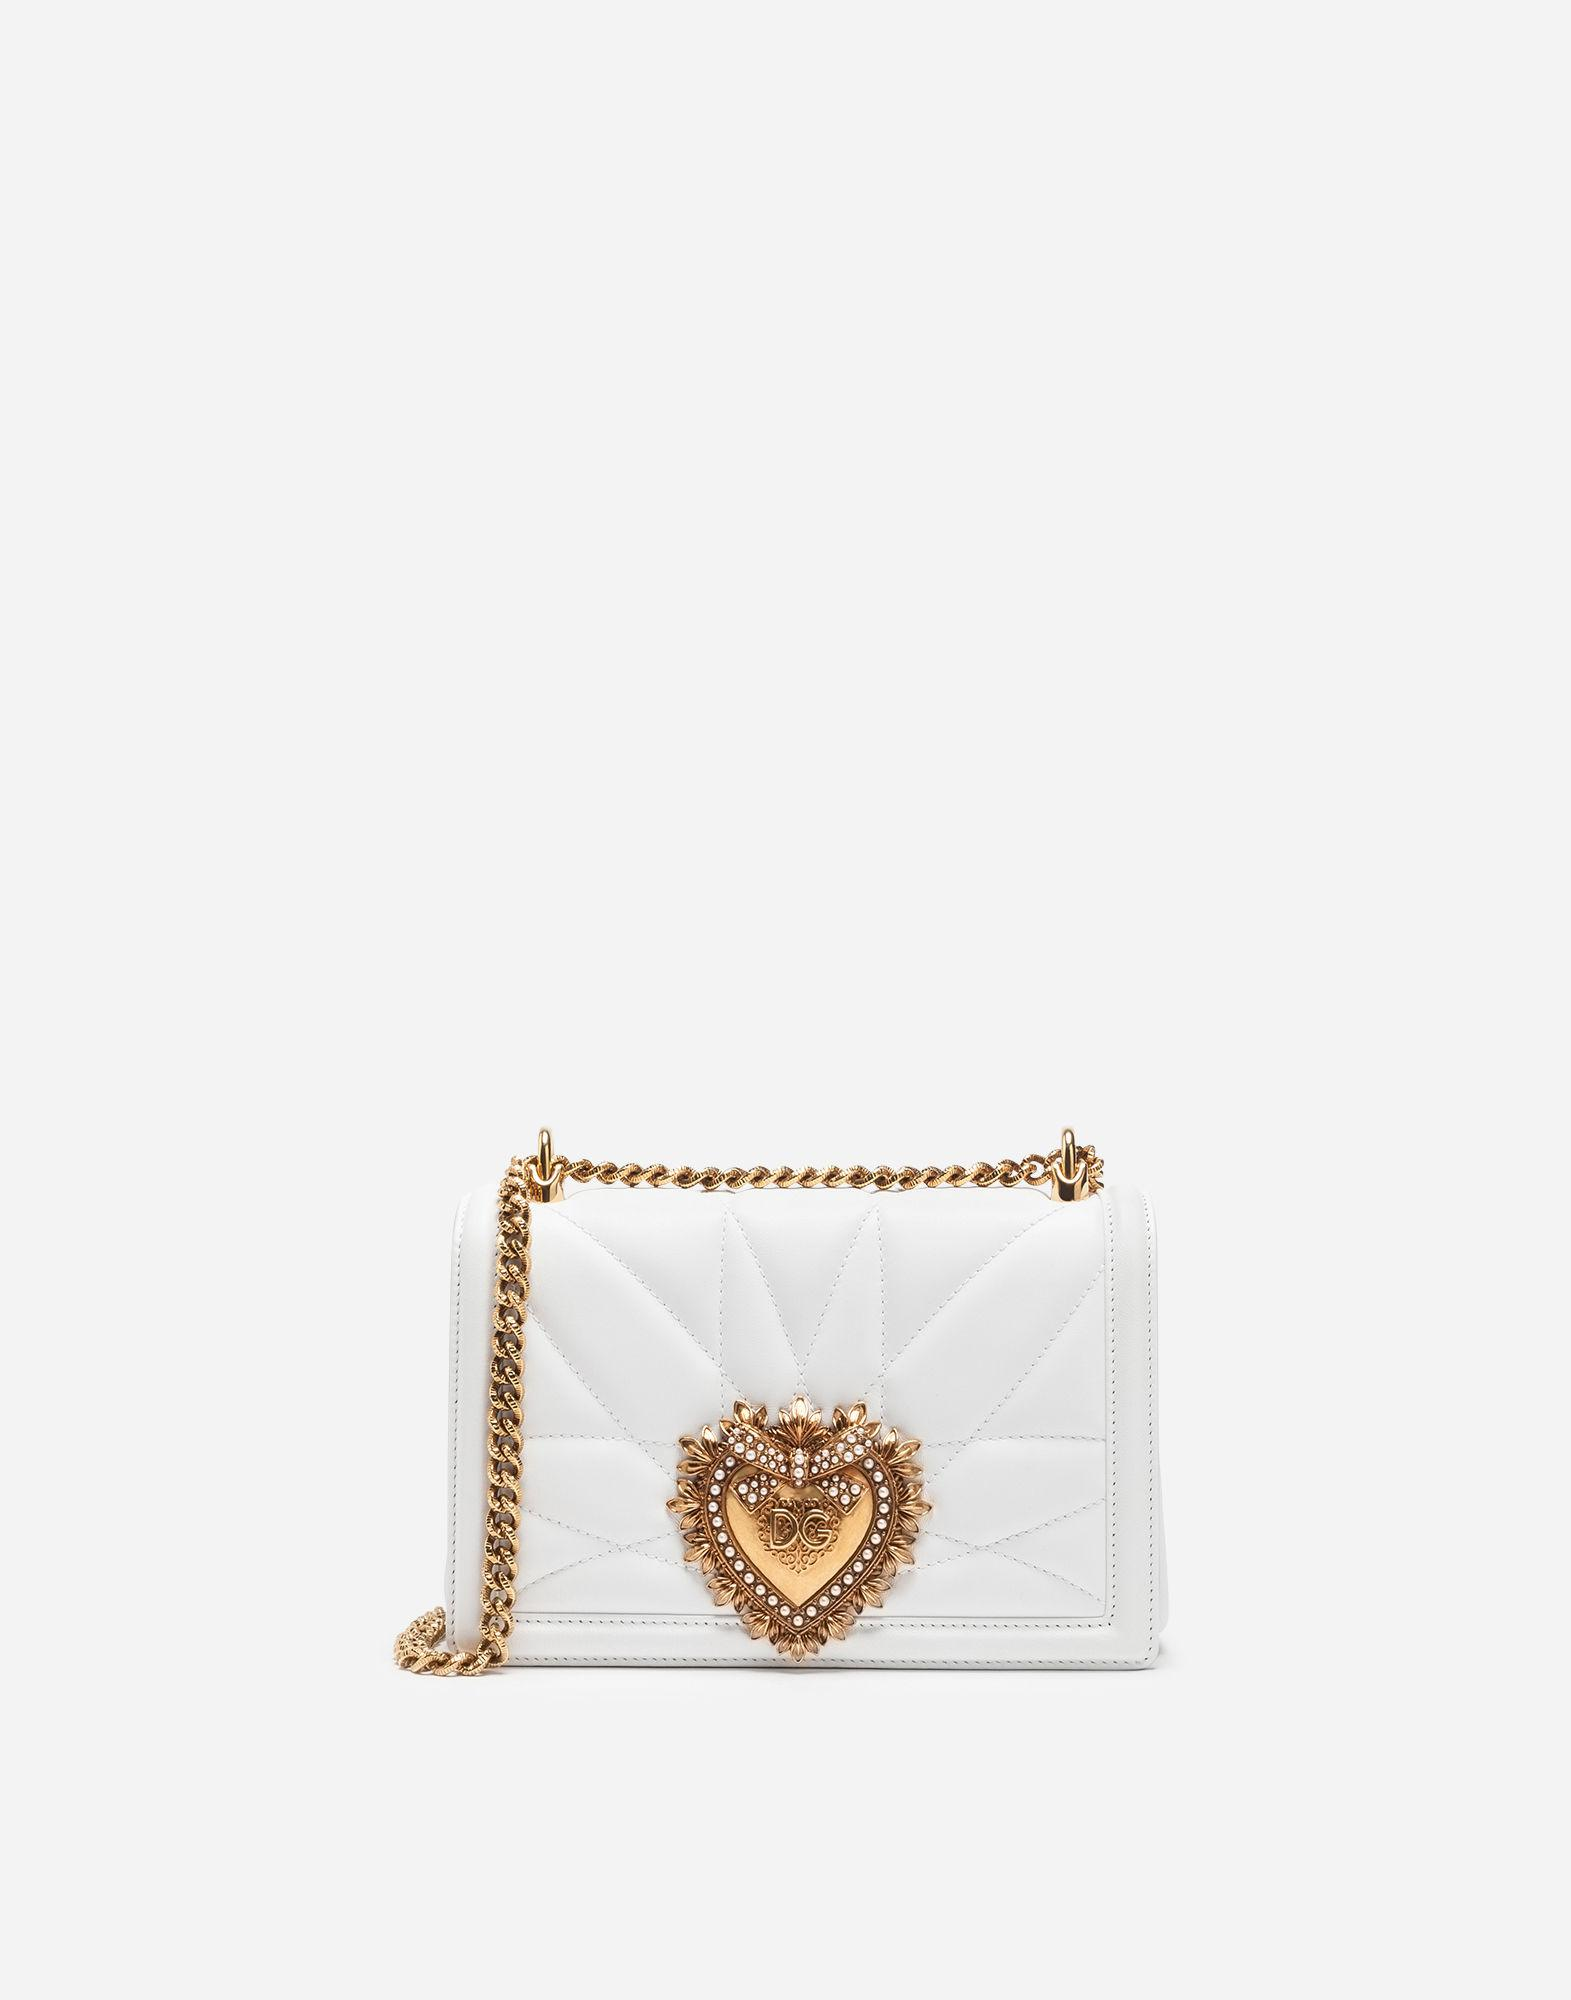 e3722dd7a6 Dolce   Gabbana. Women s White Medium Devotion Bag In Quilted Nappa Leather